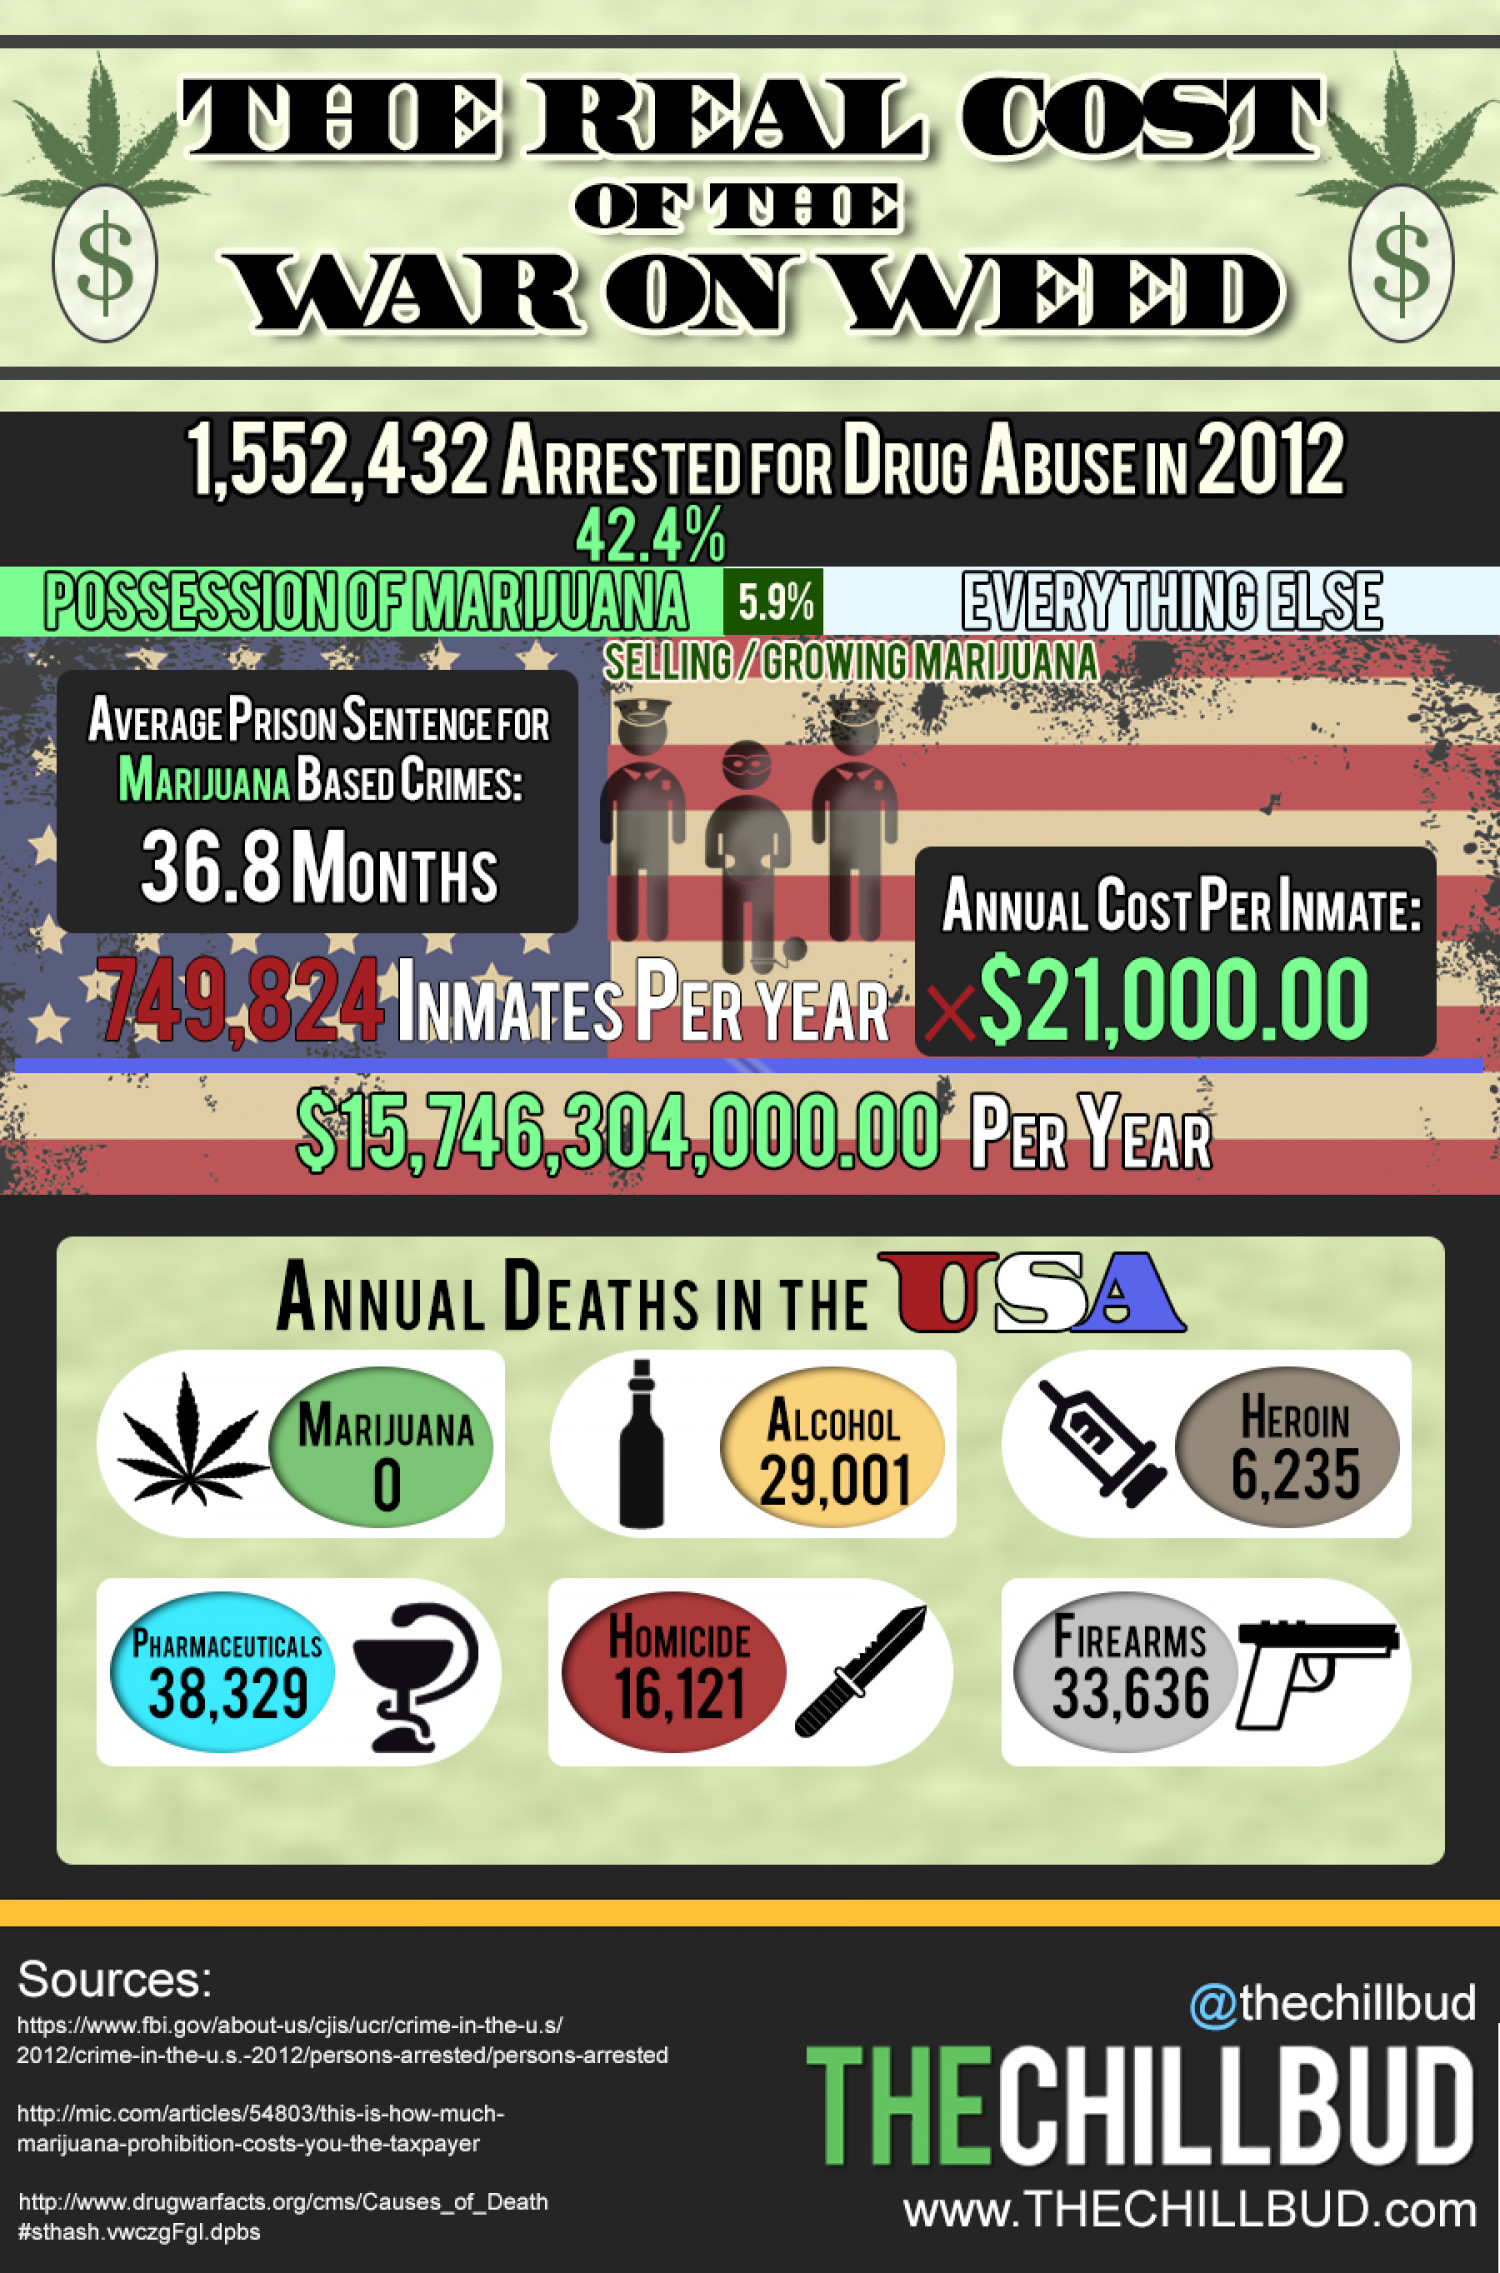 The Real Cost of the War on Weed Infographic